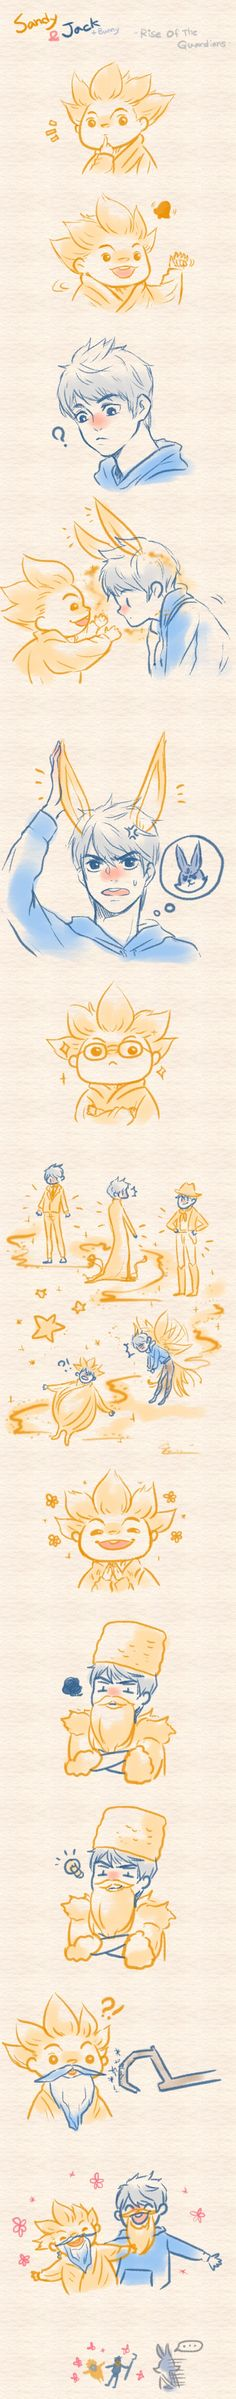 Rise Of The Guardians - Sandy and Jack by ~ispan0w0 on deviantART (Aw that is so cute)